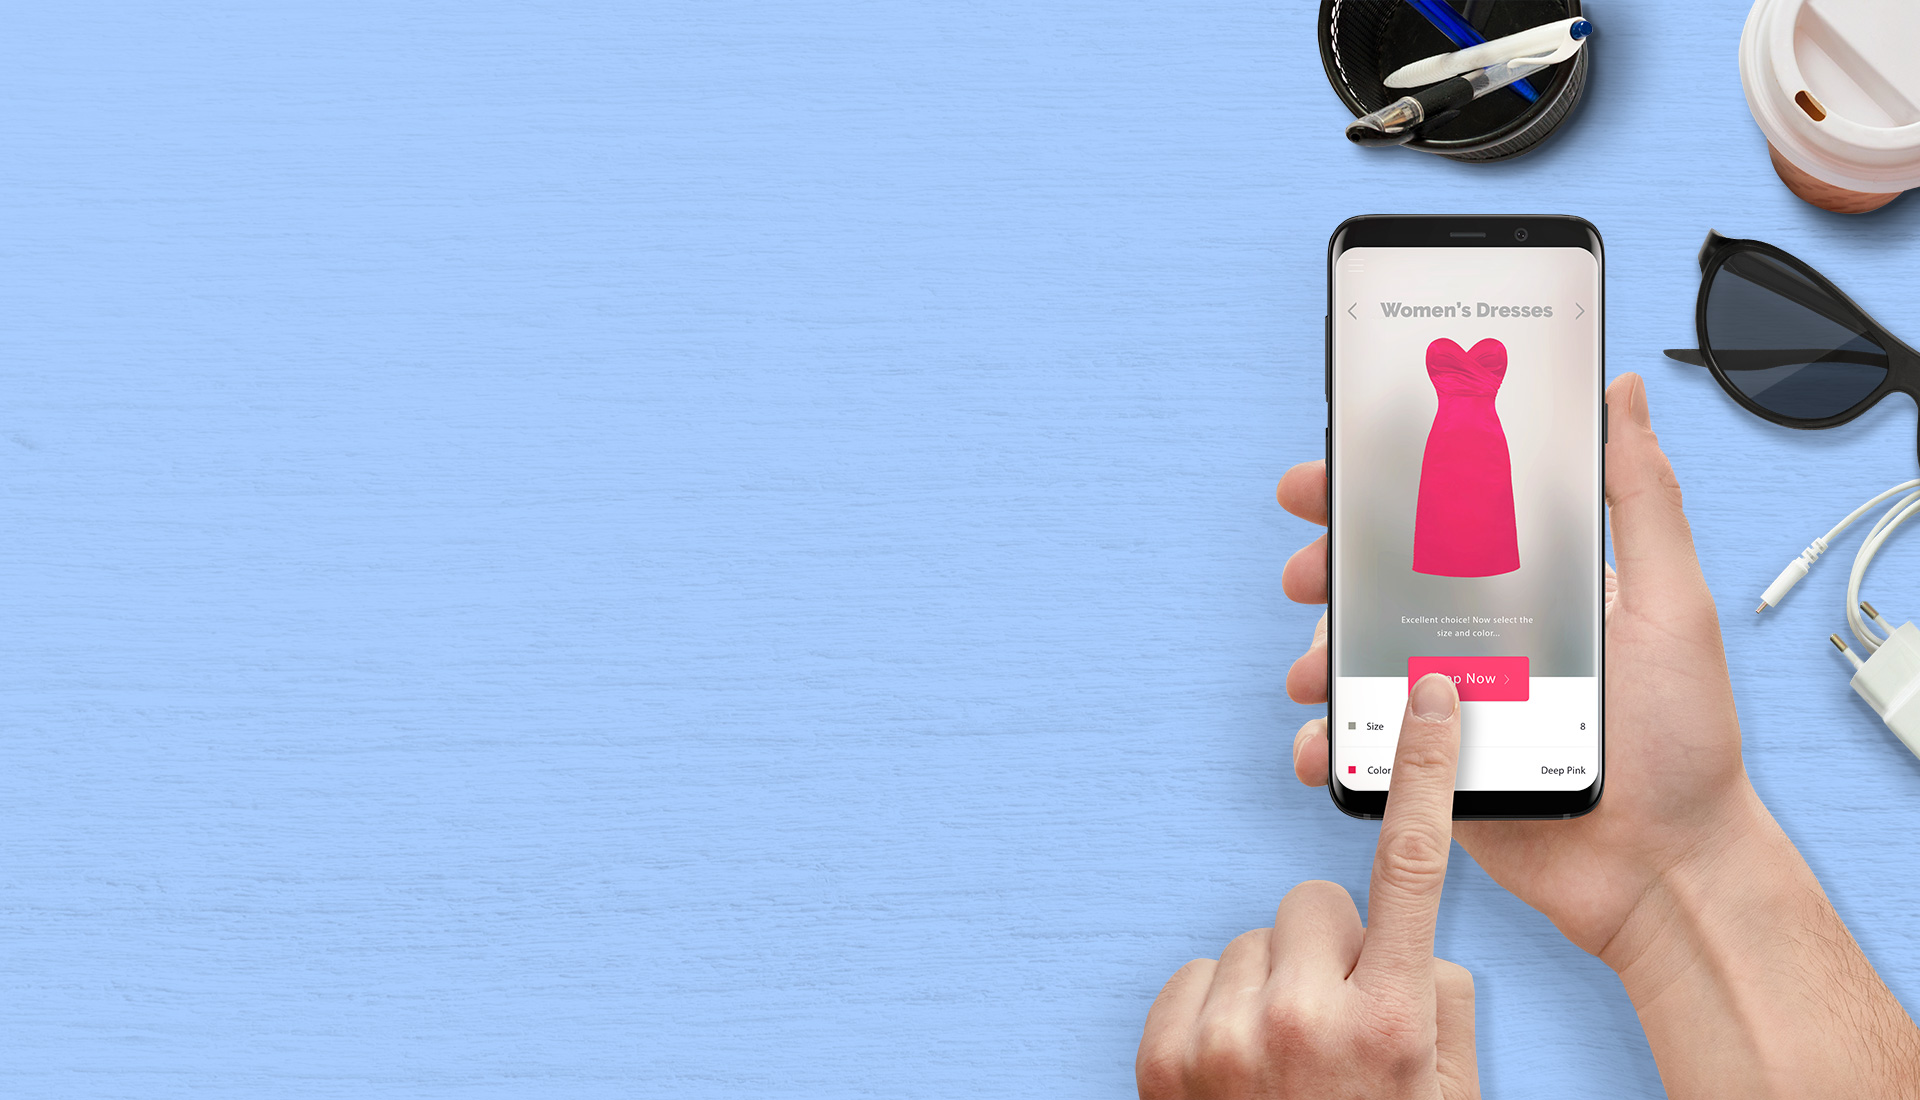 We enable brands to capitalize on omni-channel opportunities